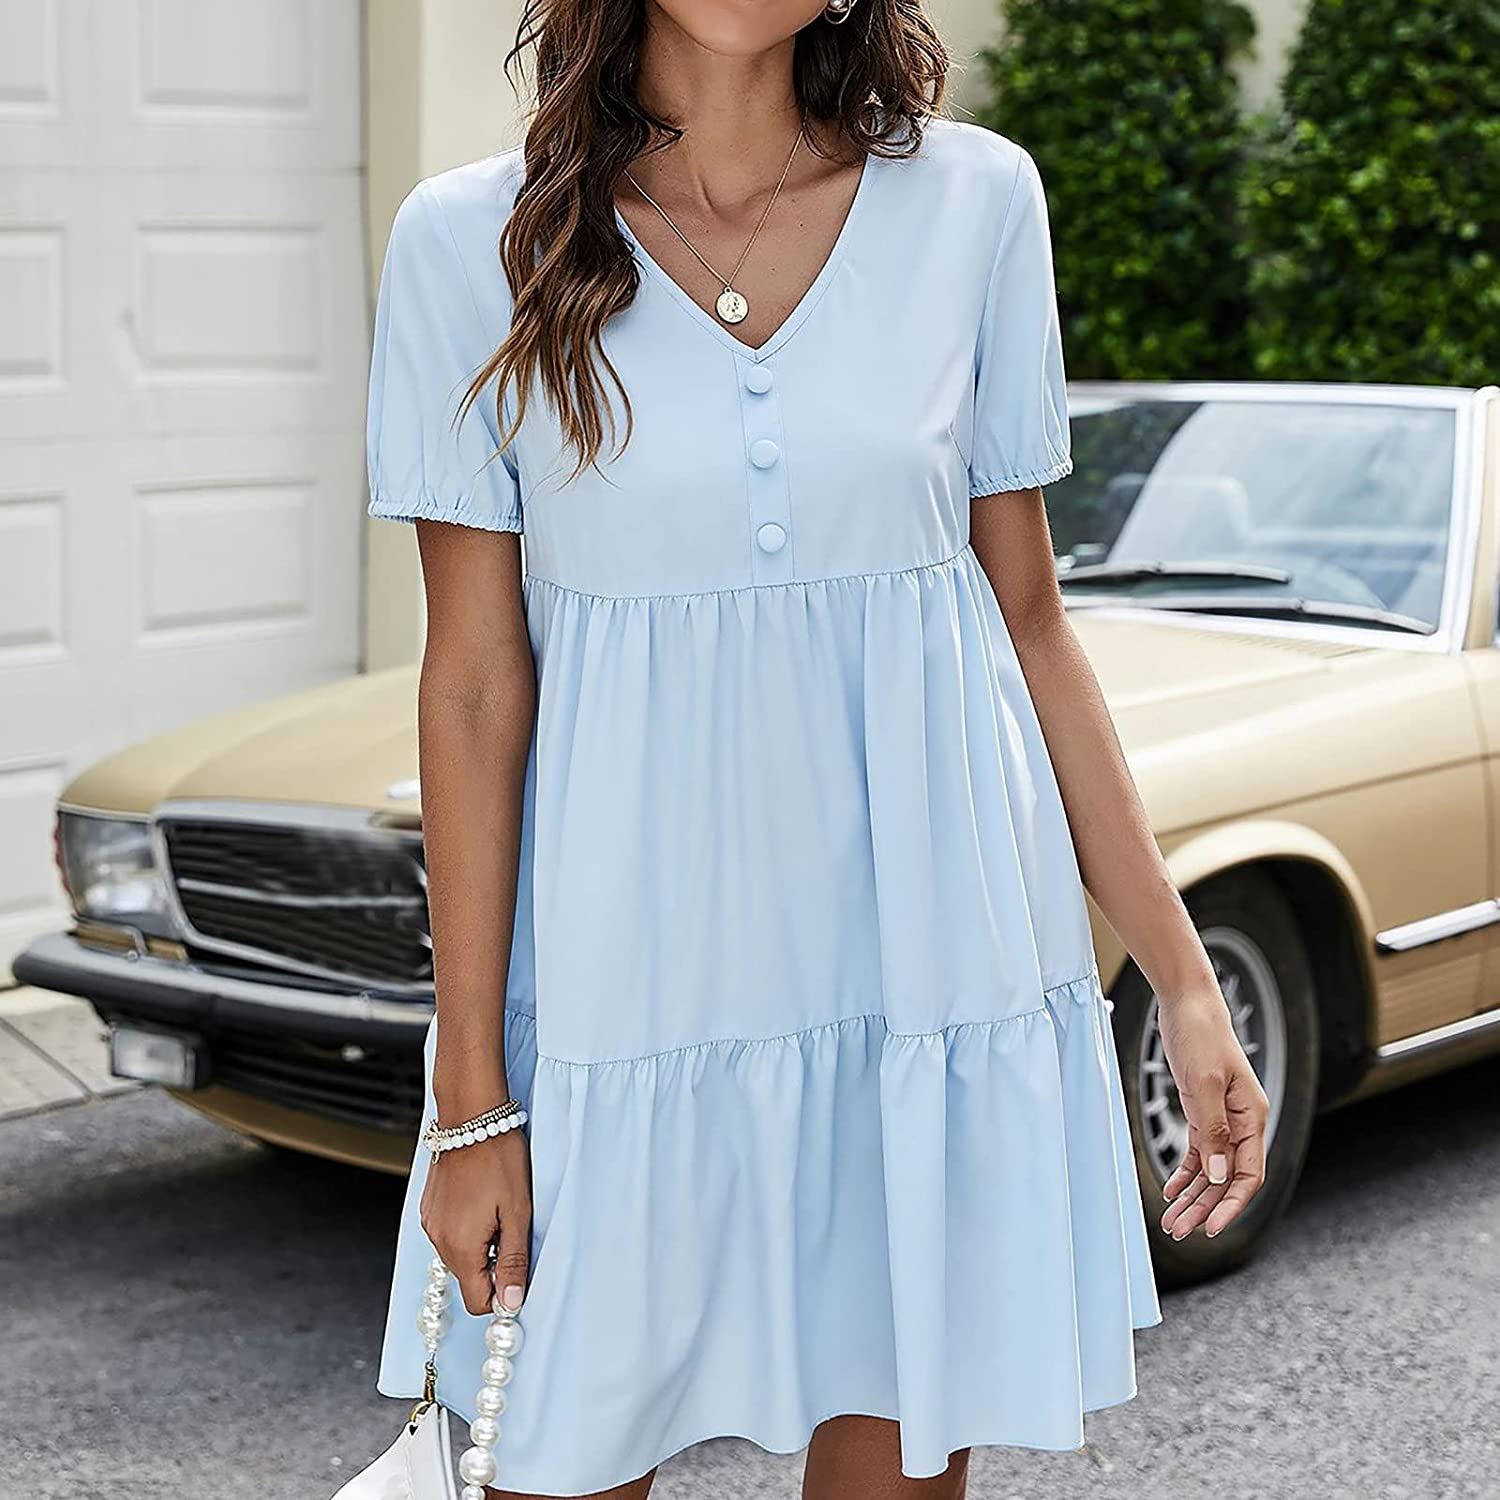 Tynelles Women's Sexy V Neck Dresses Summer Casual Short Sleeve Solid Dress Flowy Ruffles Pleated Flare Dress